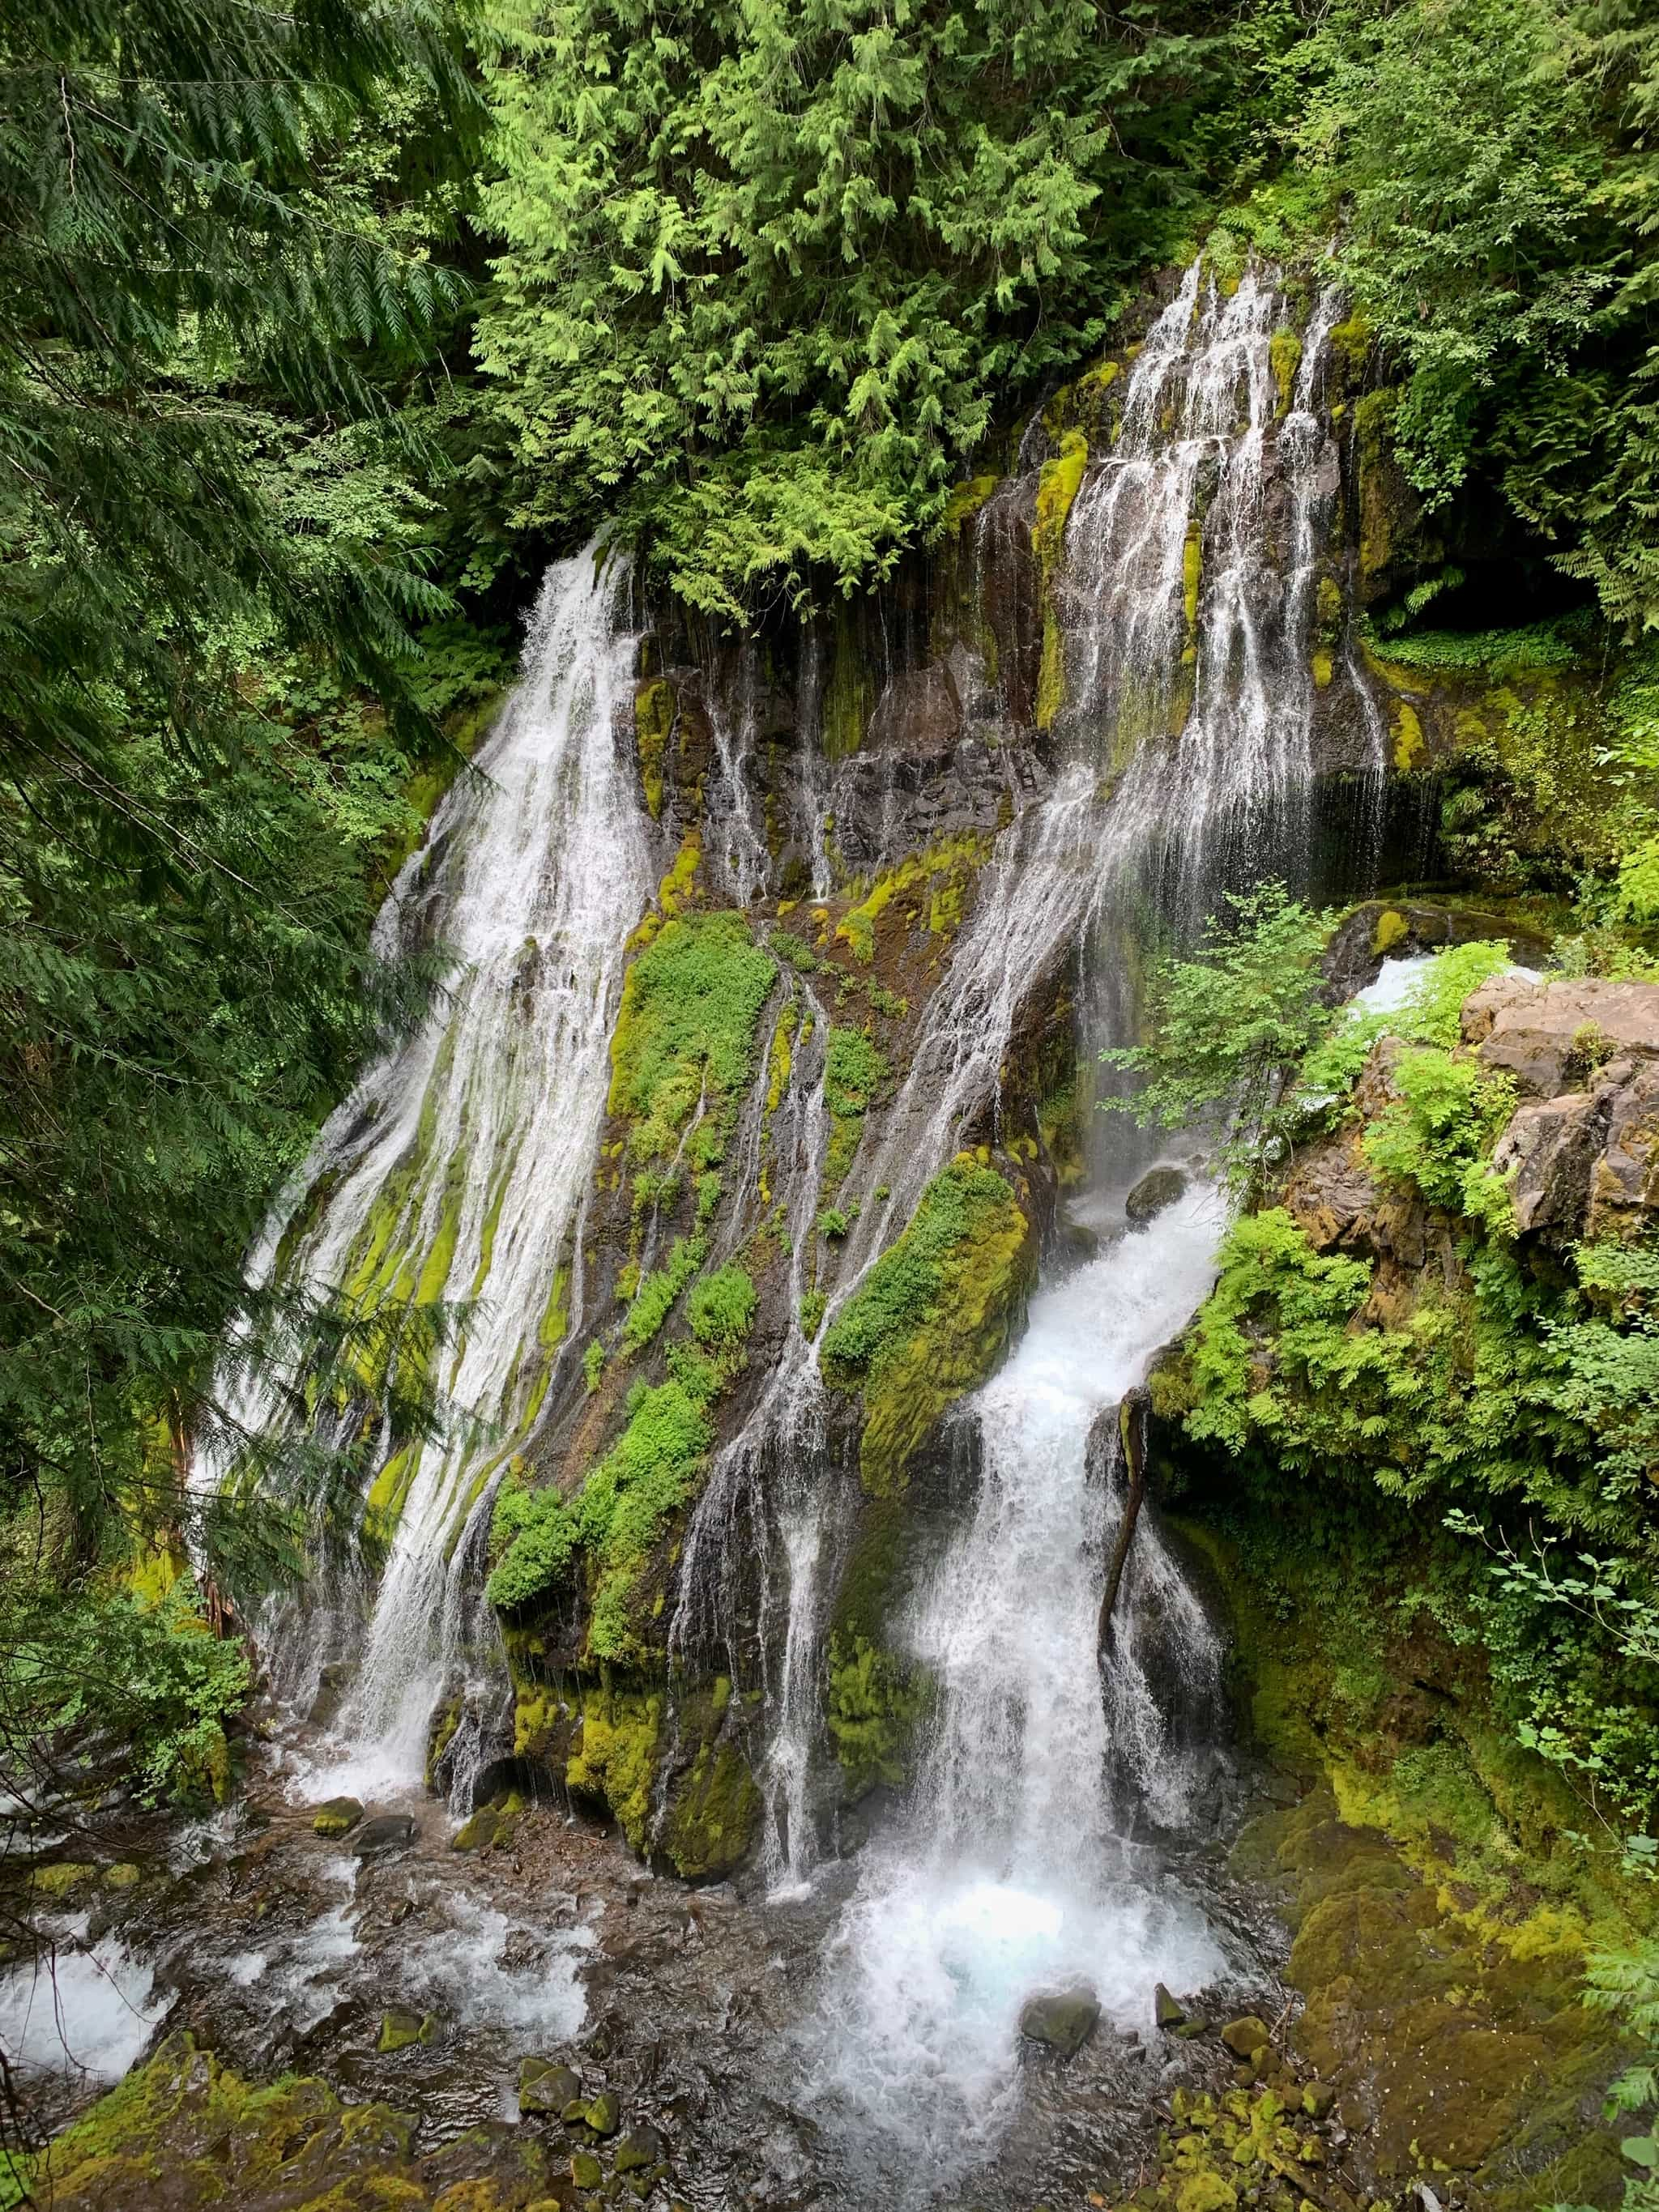 Panther Creek falls in Gifford Pinchot National forest.